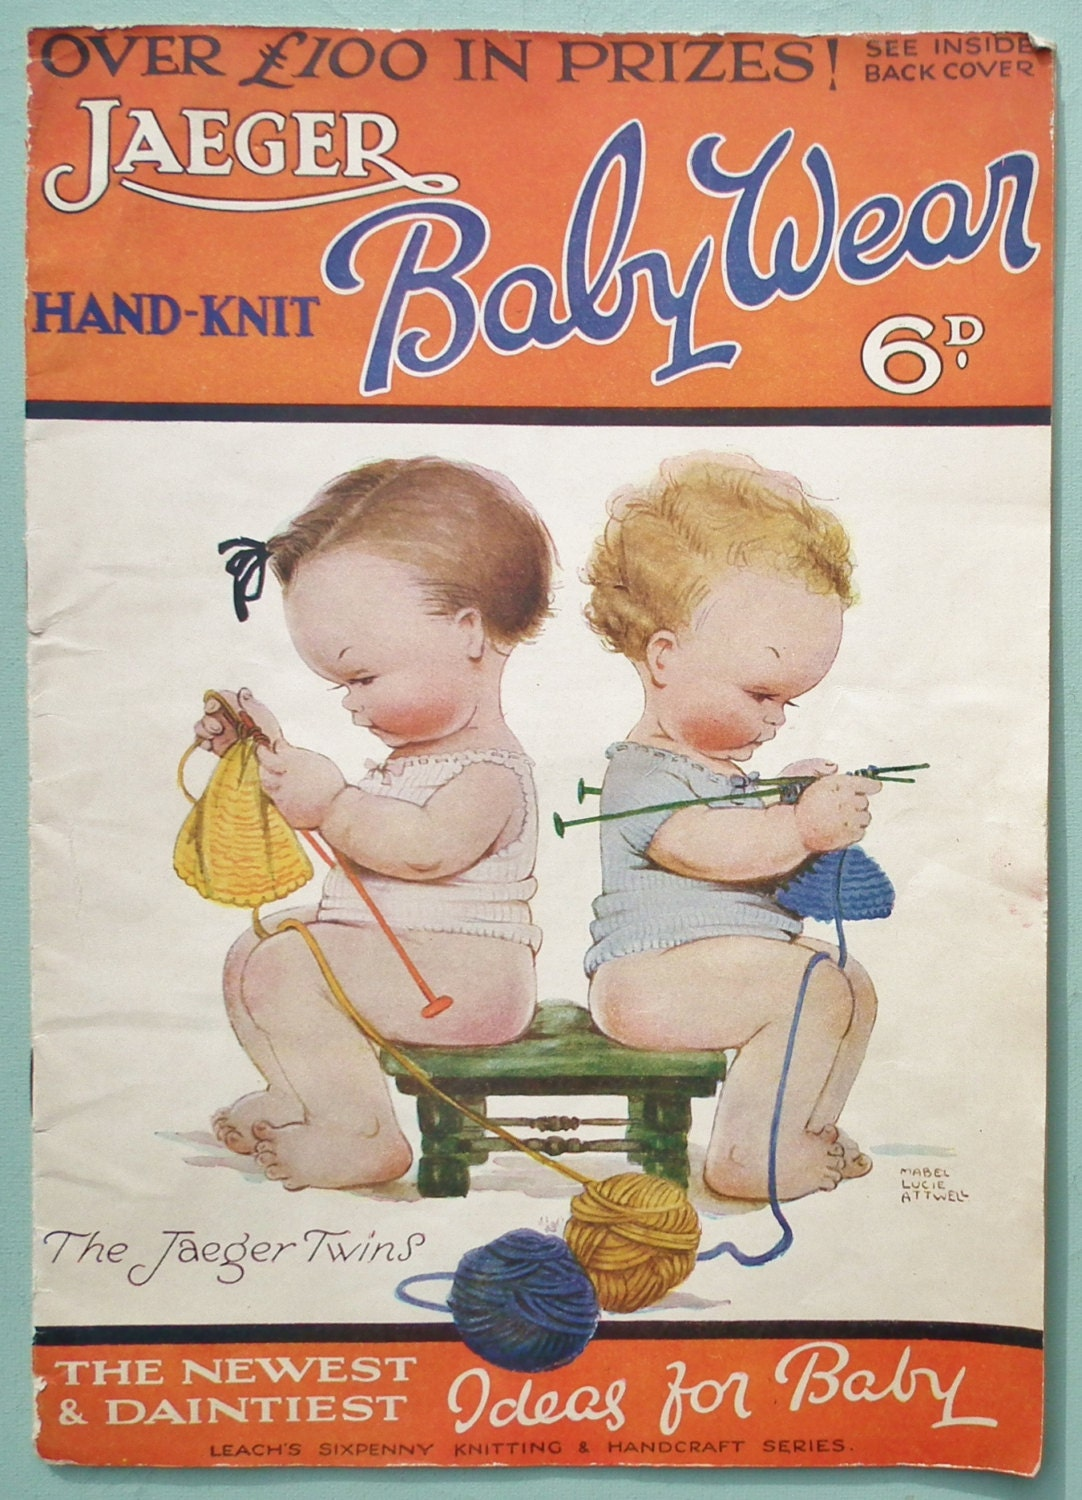 Jaeger hand knit baby wear mabel lucie attwell vintage 1930s description vintage 1930s knitting patterns bankloansurffo Images